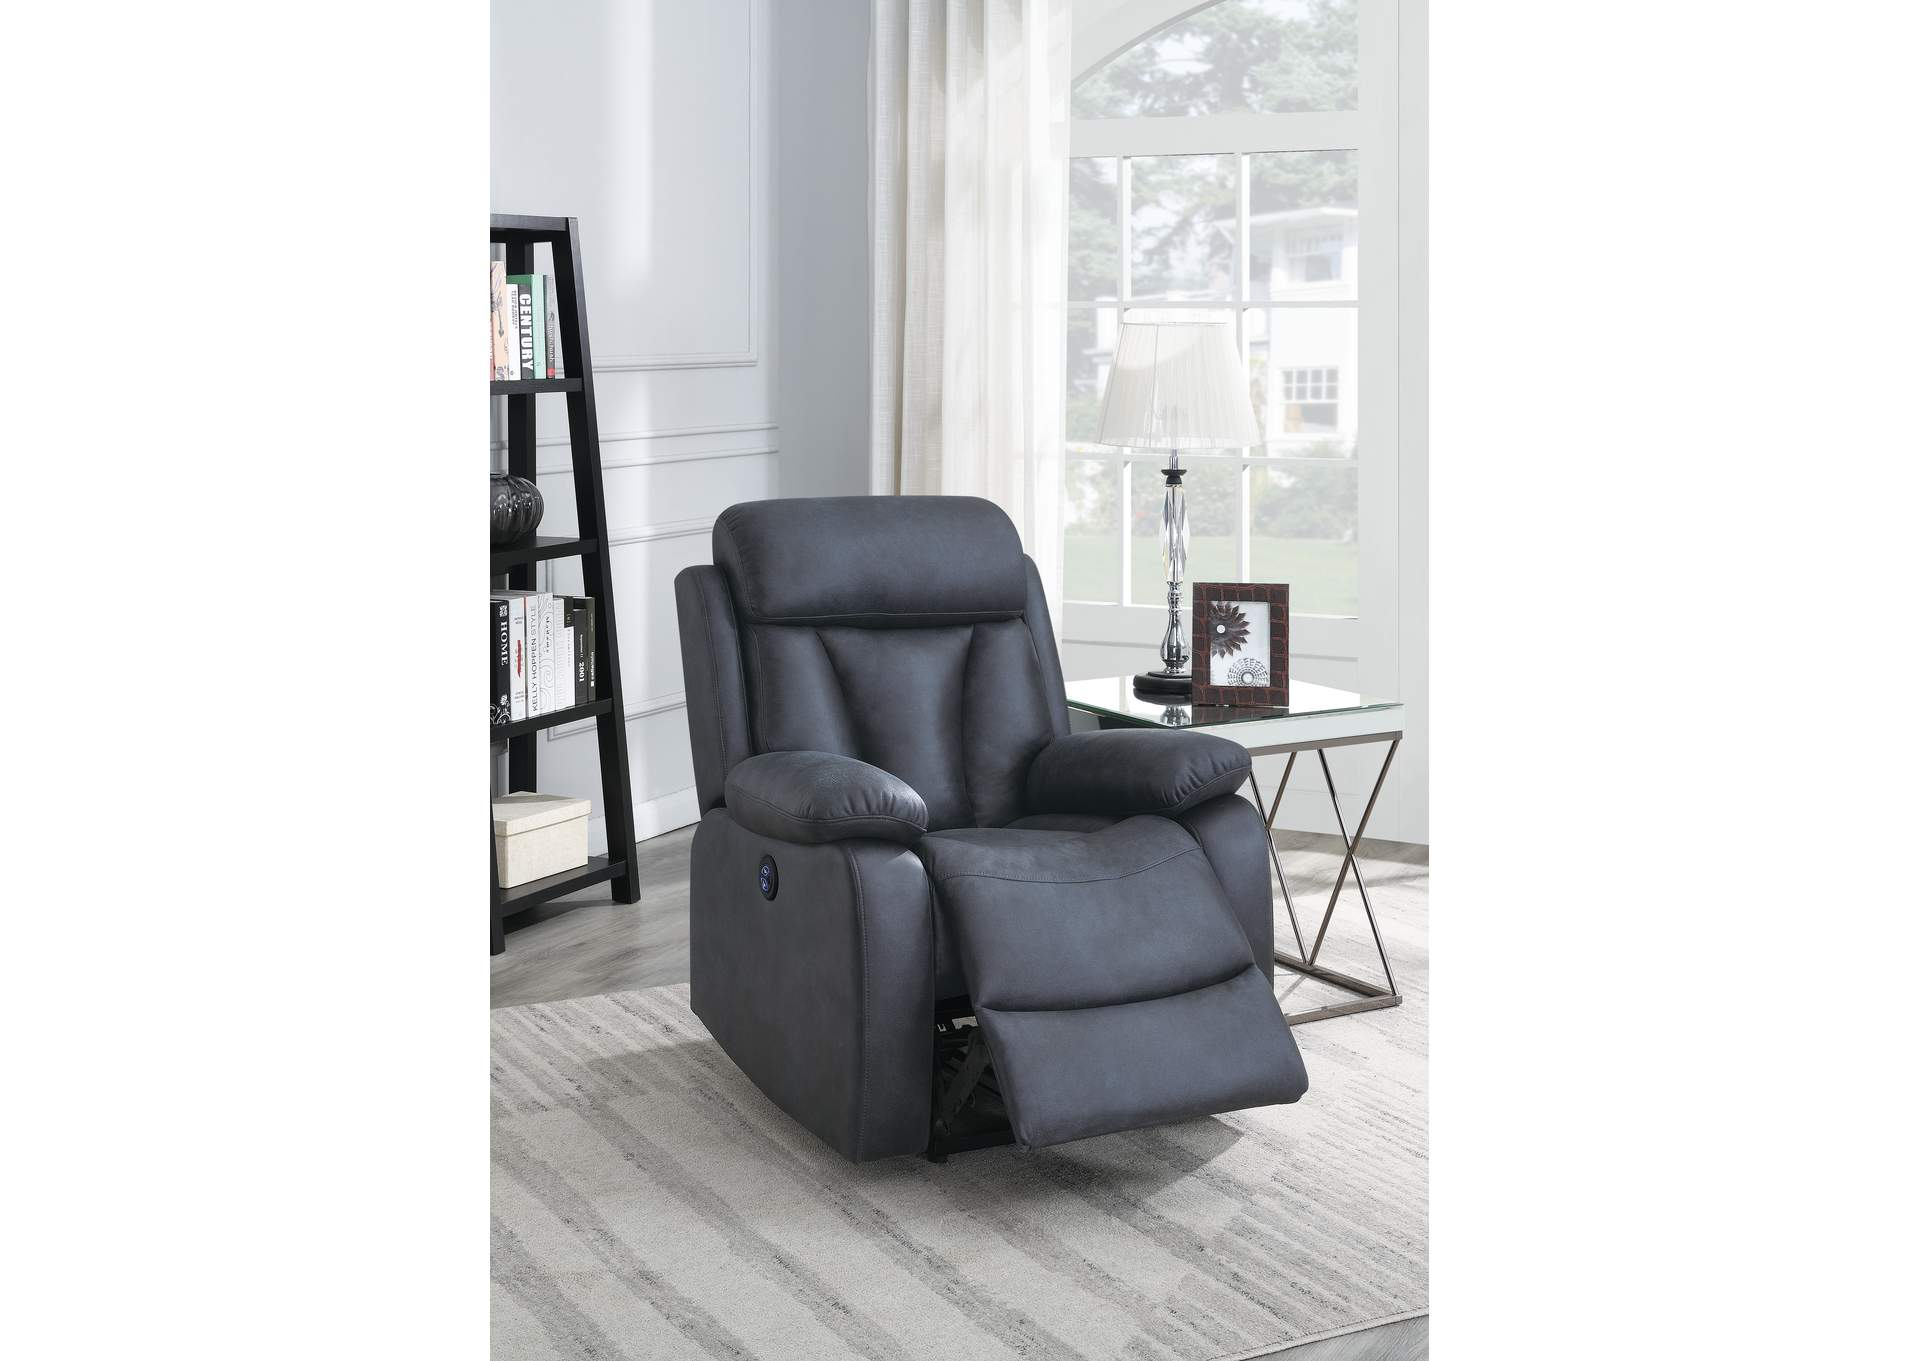 Jovfur Navy Blue Power Recliner,Poundex